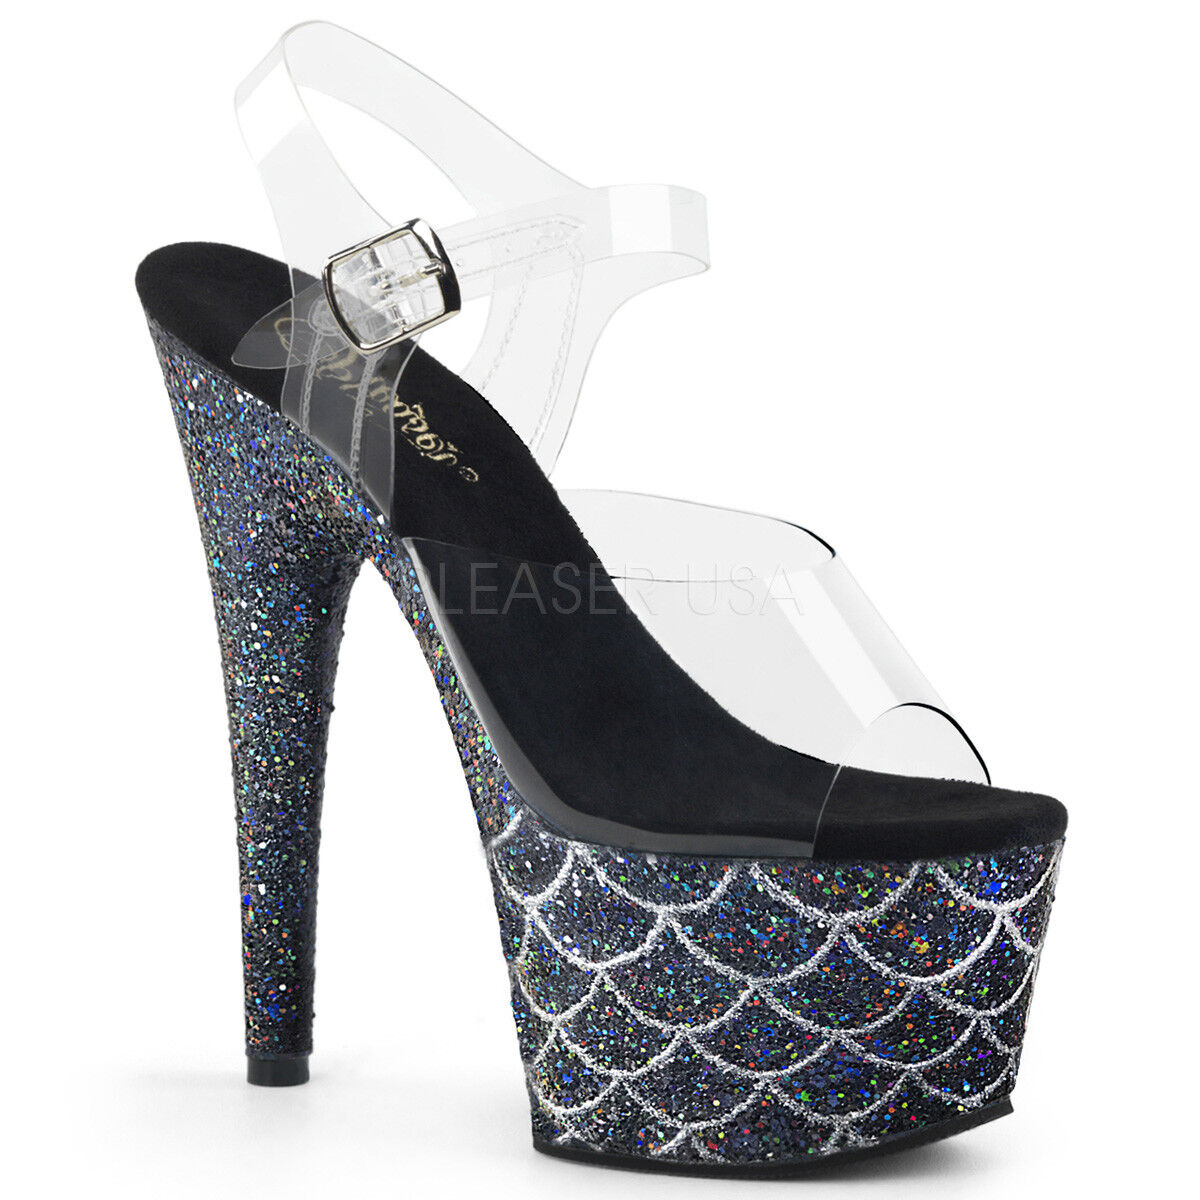 Pleaser ADORE-708MSLG Glitter Ankle Strap Sandale Holographic Glitter ADORE-708MSLG Mermaid Scales 5c0d36